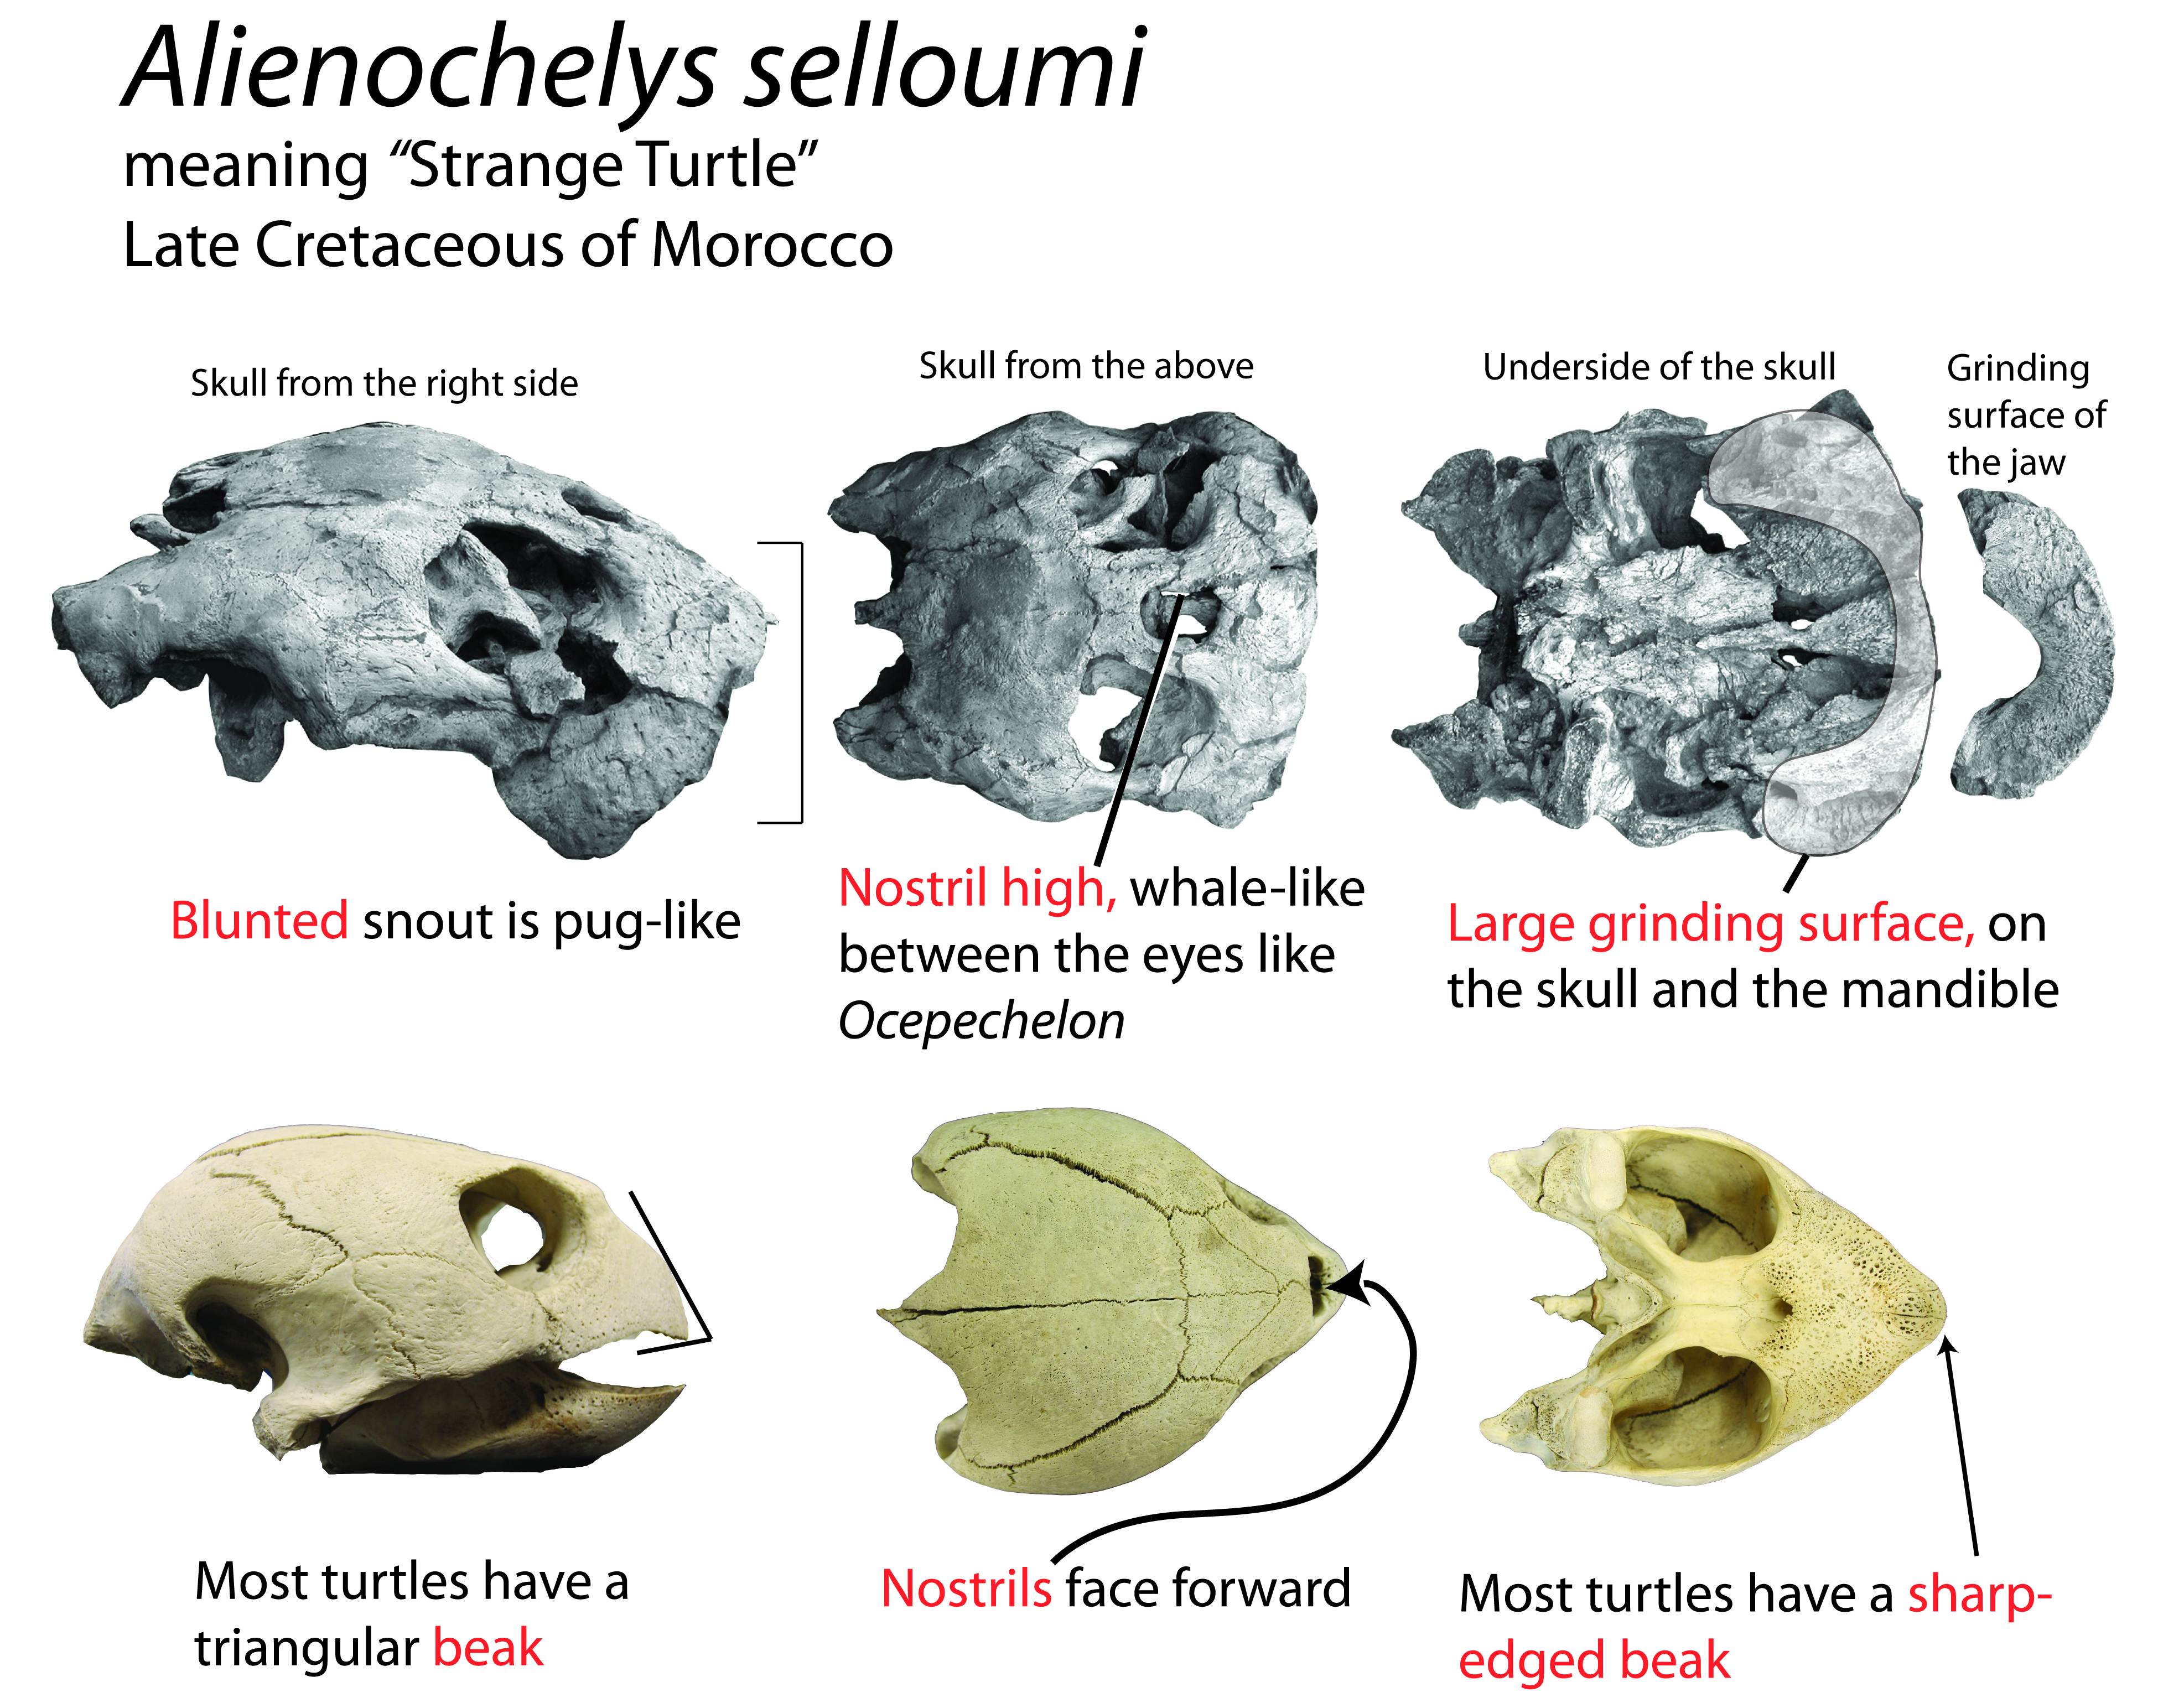 Alienochelys information